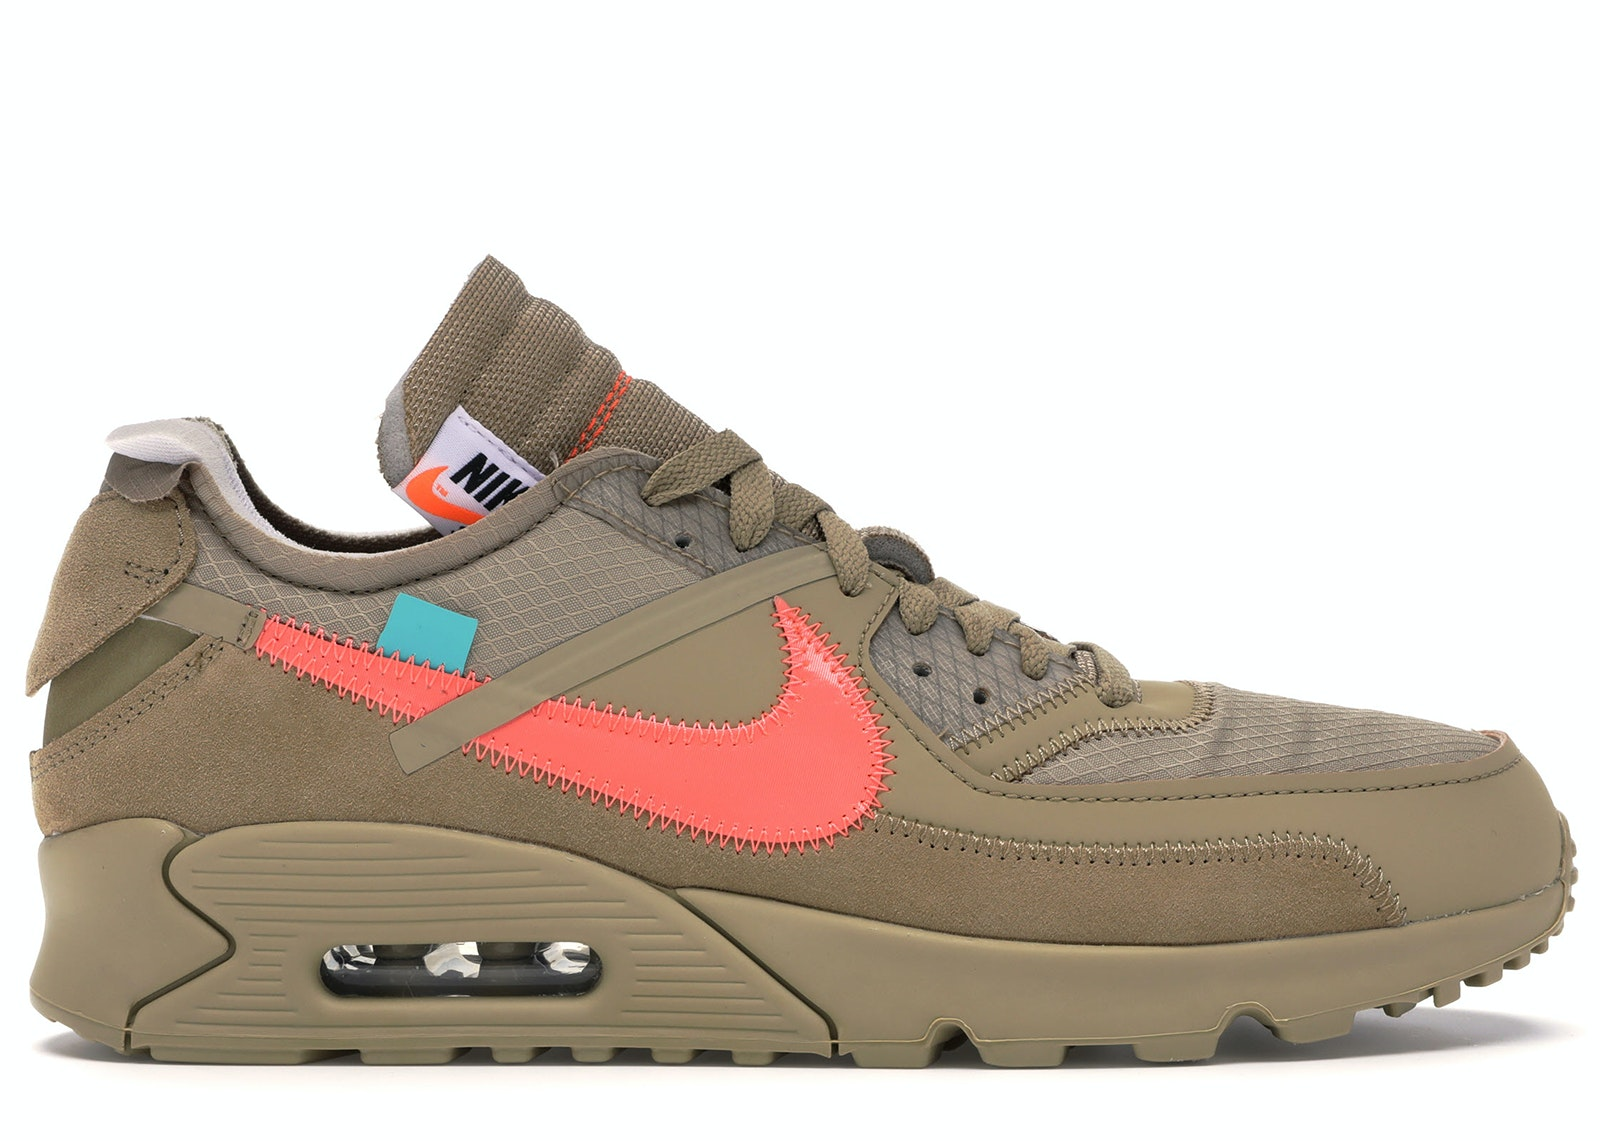 Air Max 90 OFF-WHITE Desert Ore